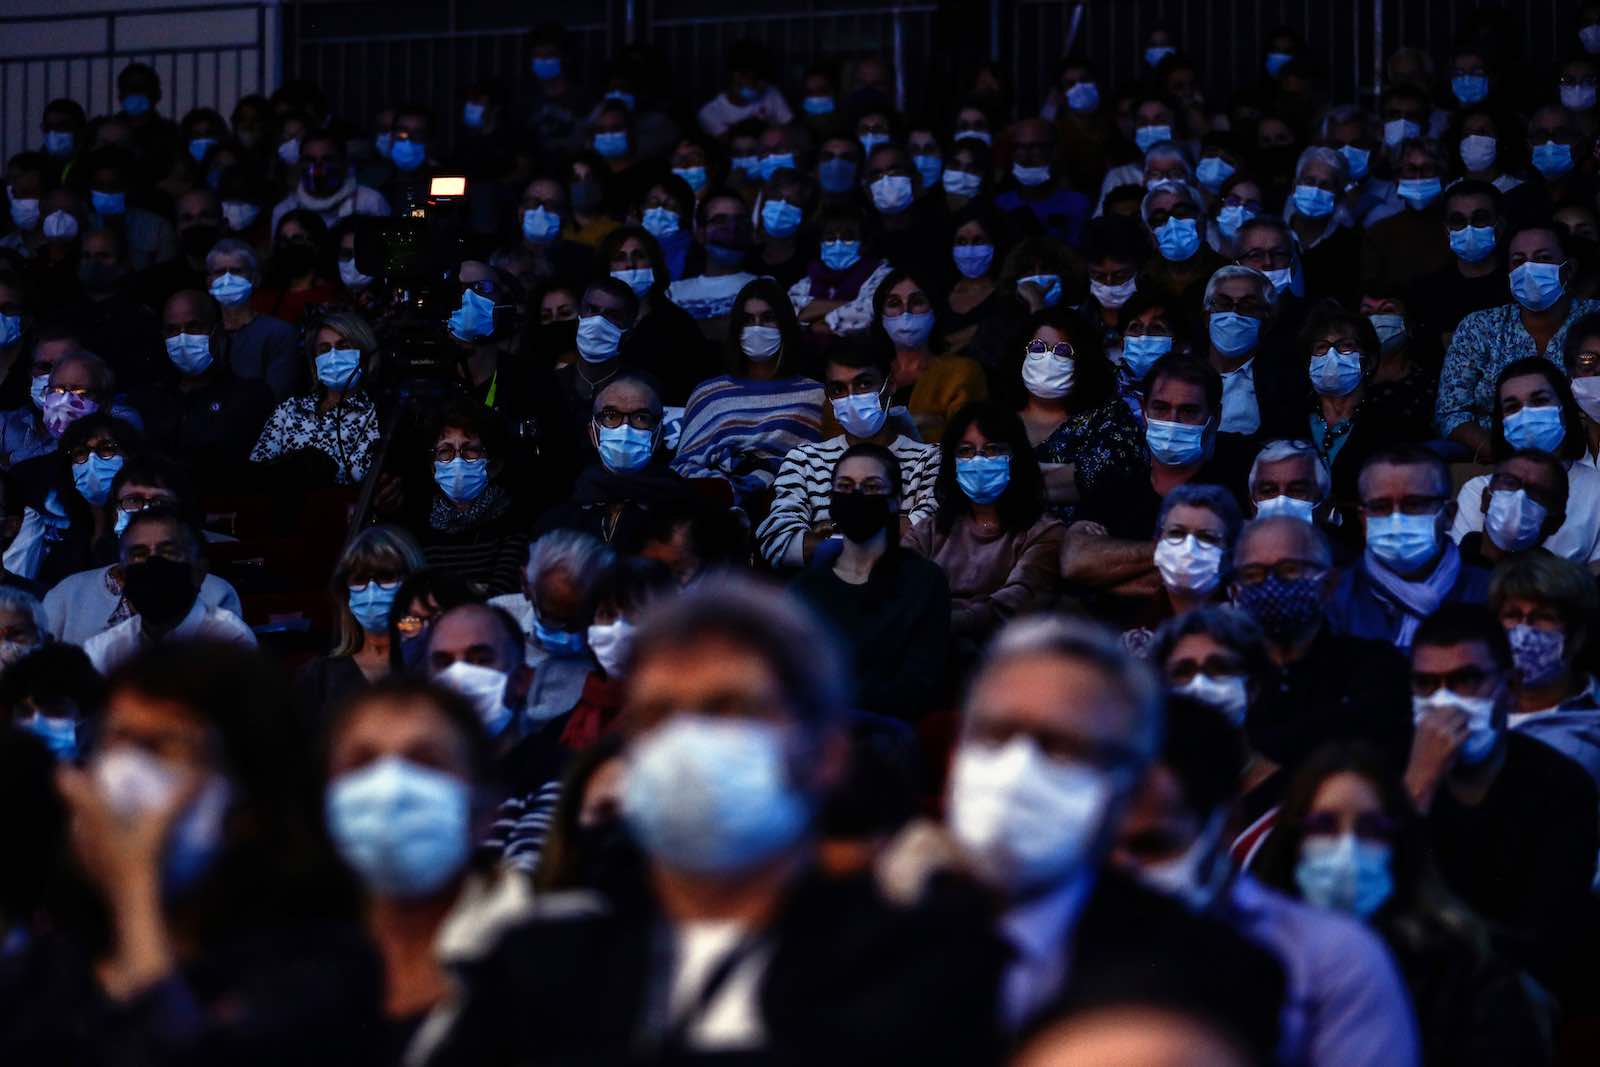 Crowds unimagined before 2020 (Sameer Al-Doumy/AFP via Getty Images)